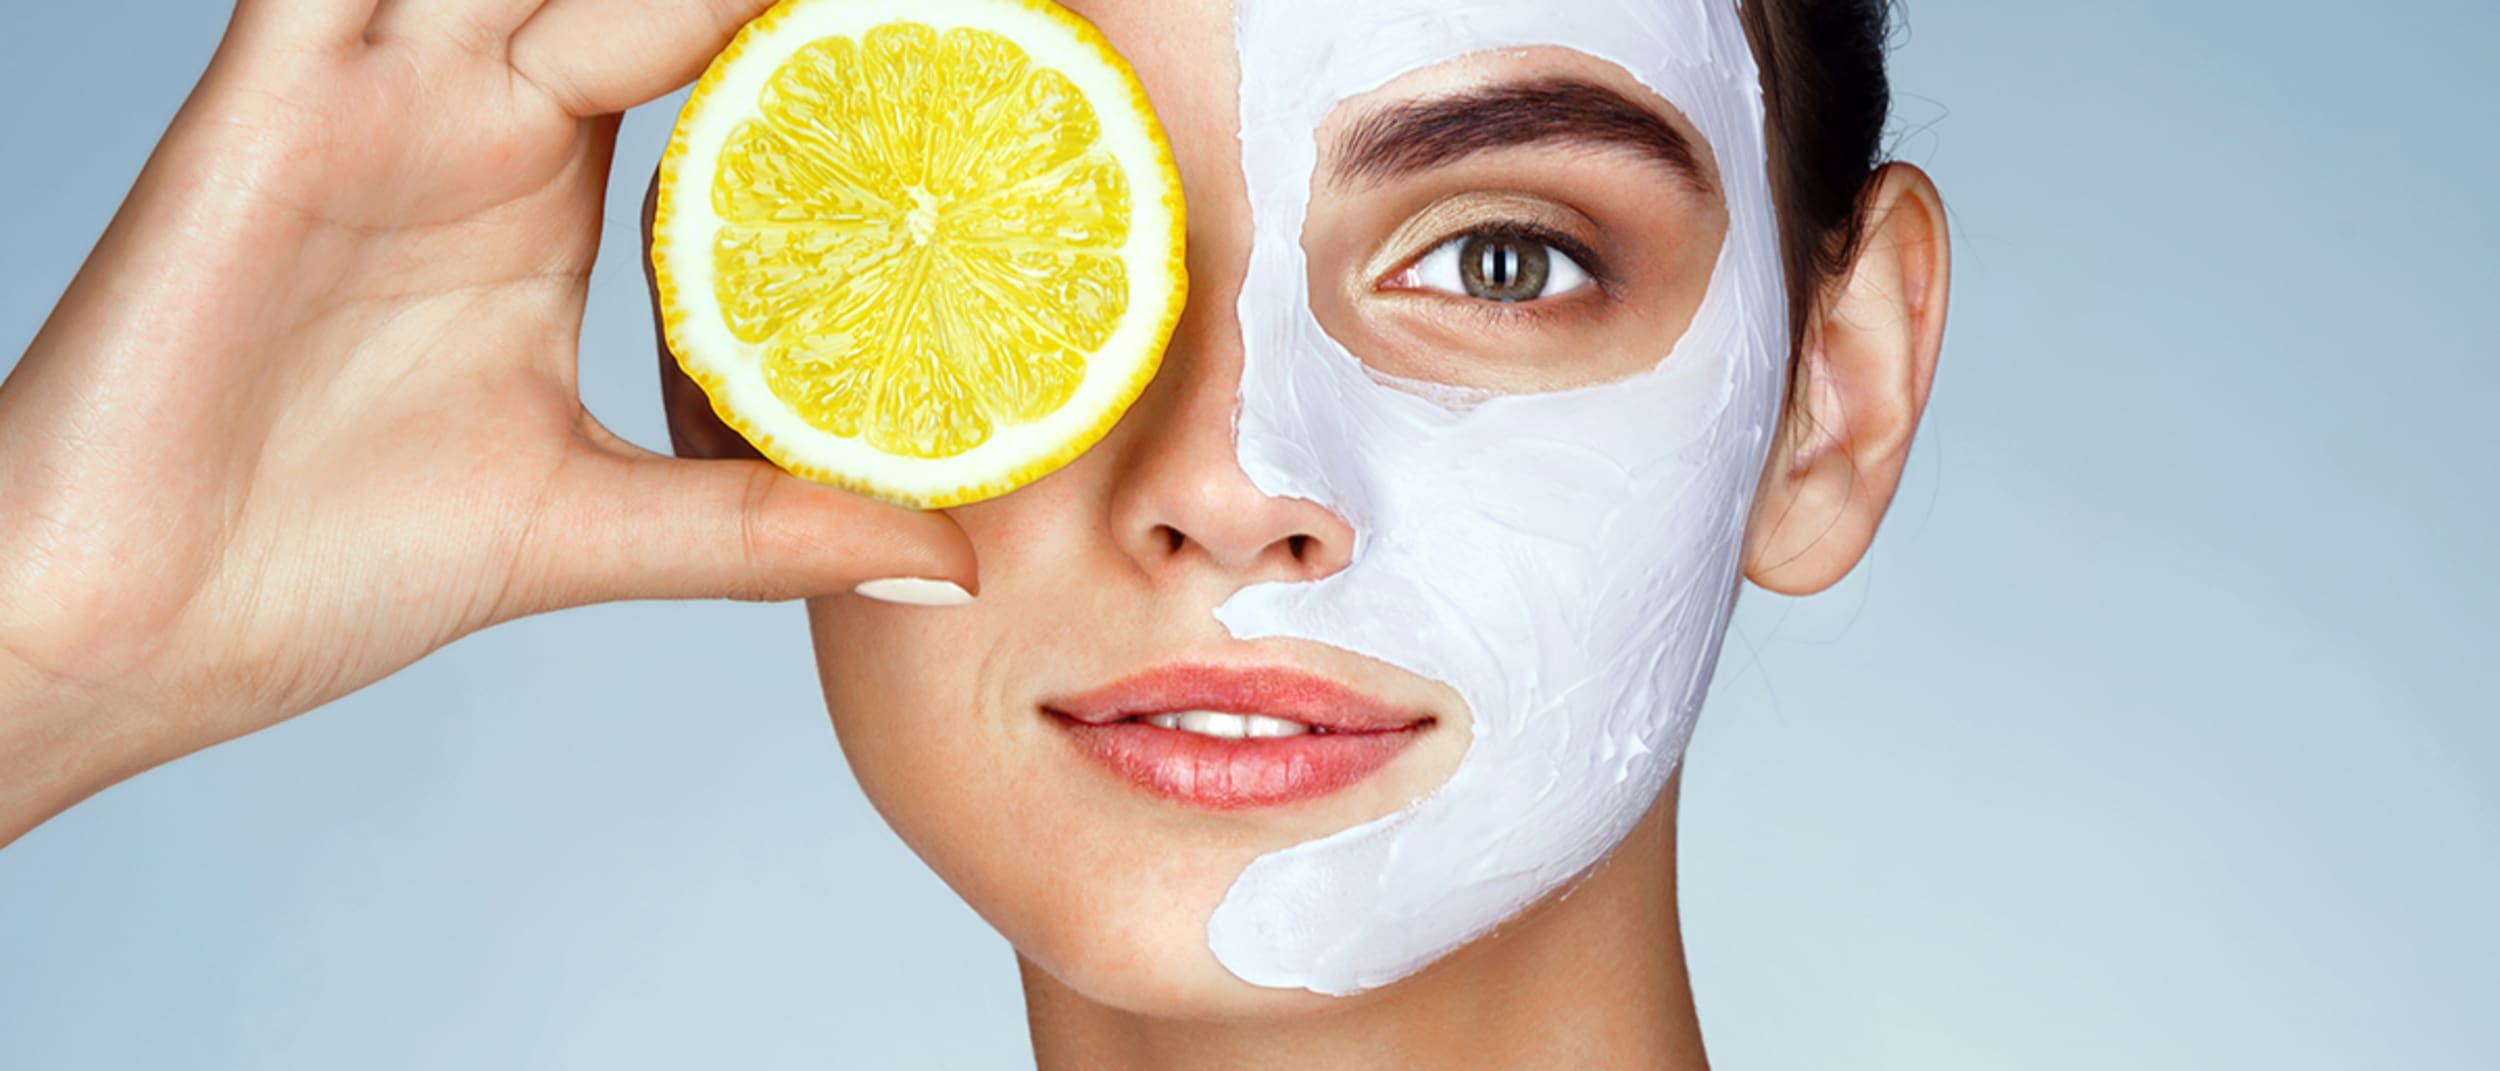 Pure Indulgence: Super C facial for only $99 - Garden City